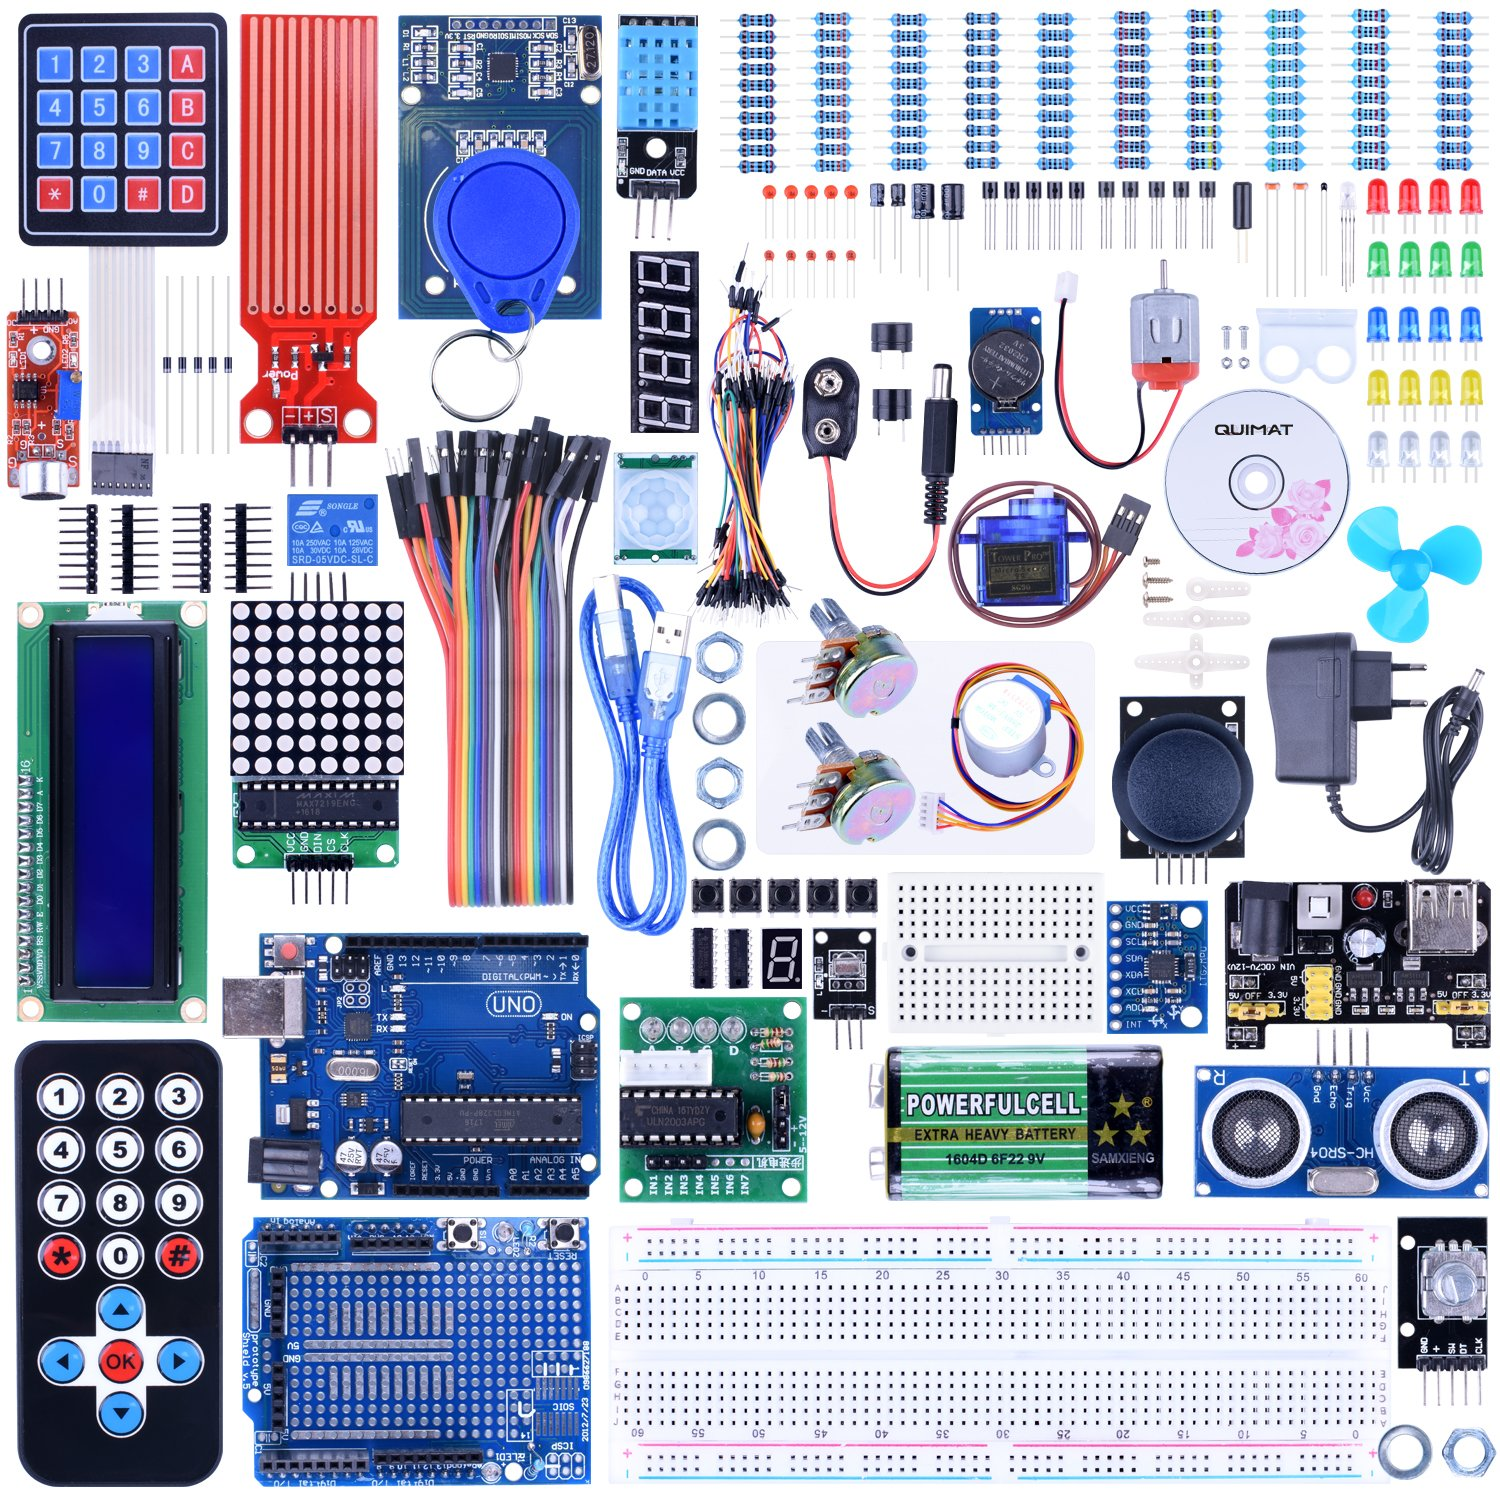 QK27 Quimat UNO R3 Project Complete Ultimate Starter Kit for Arduino with Tutorial,UNO R3 Development Board,Expansion Board,LCD1602,HC-SR501,Ultrasonic Sensor Module with Bracket 69 Items